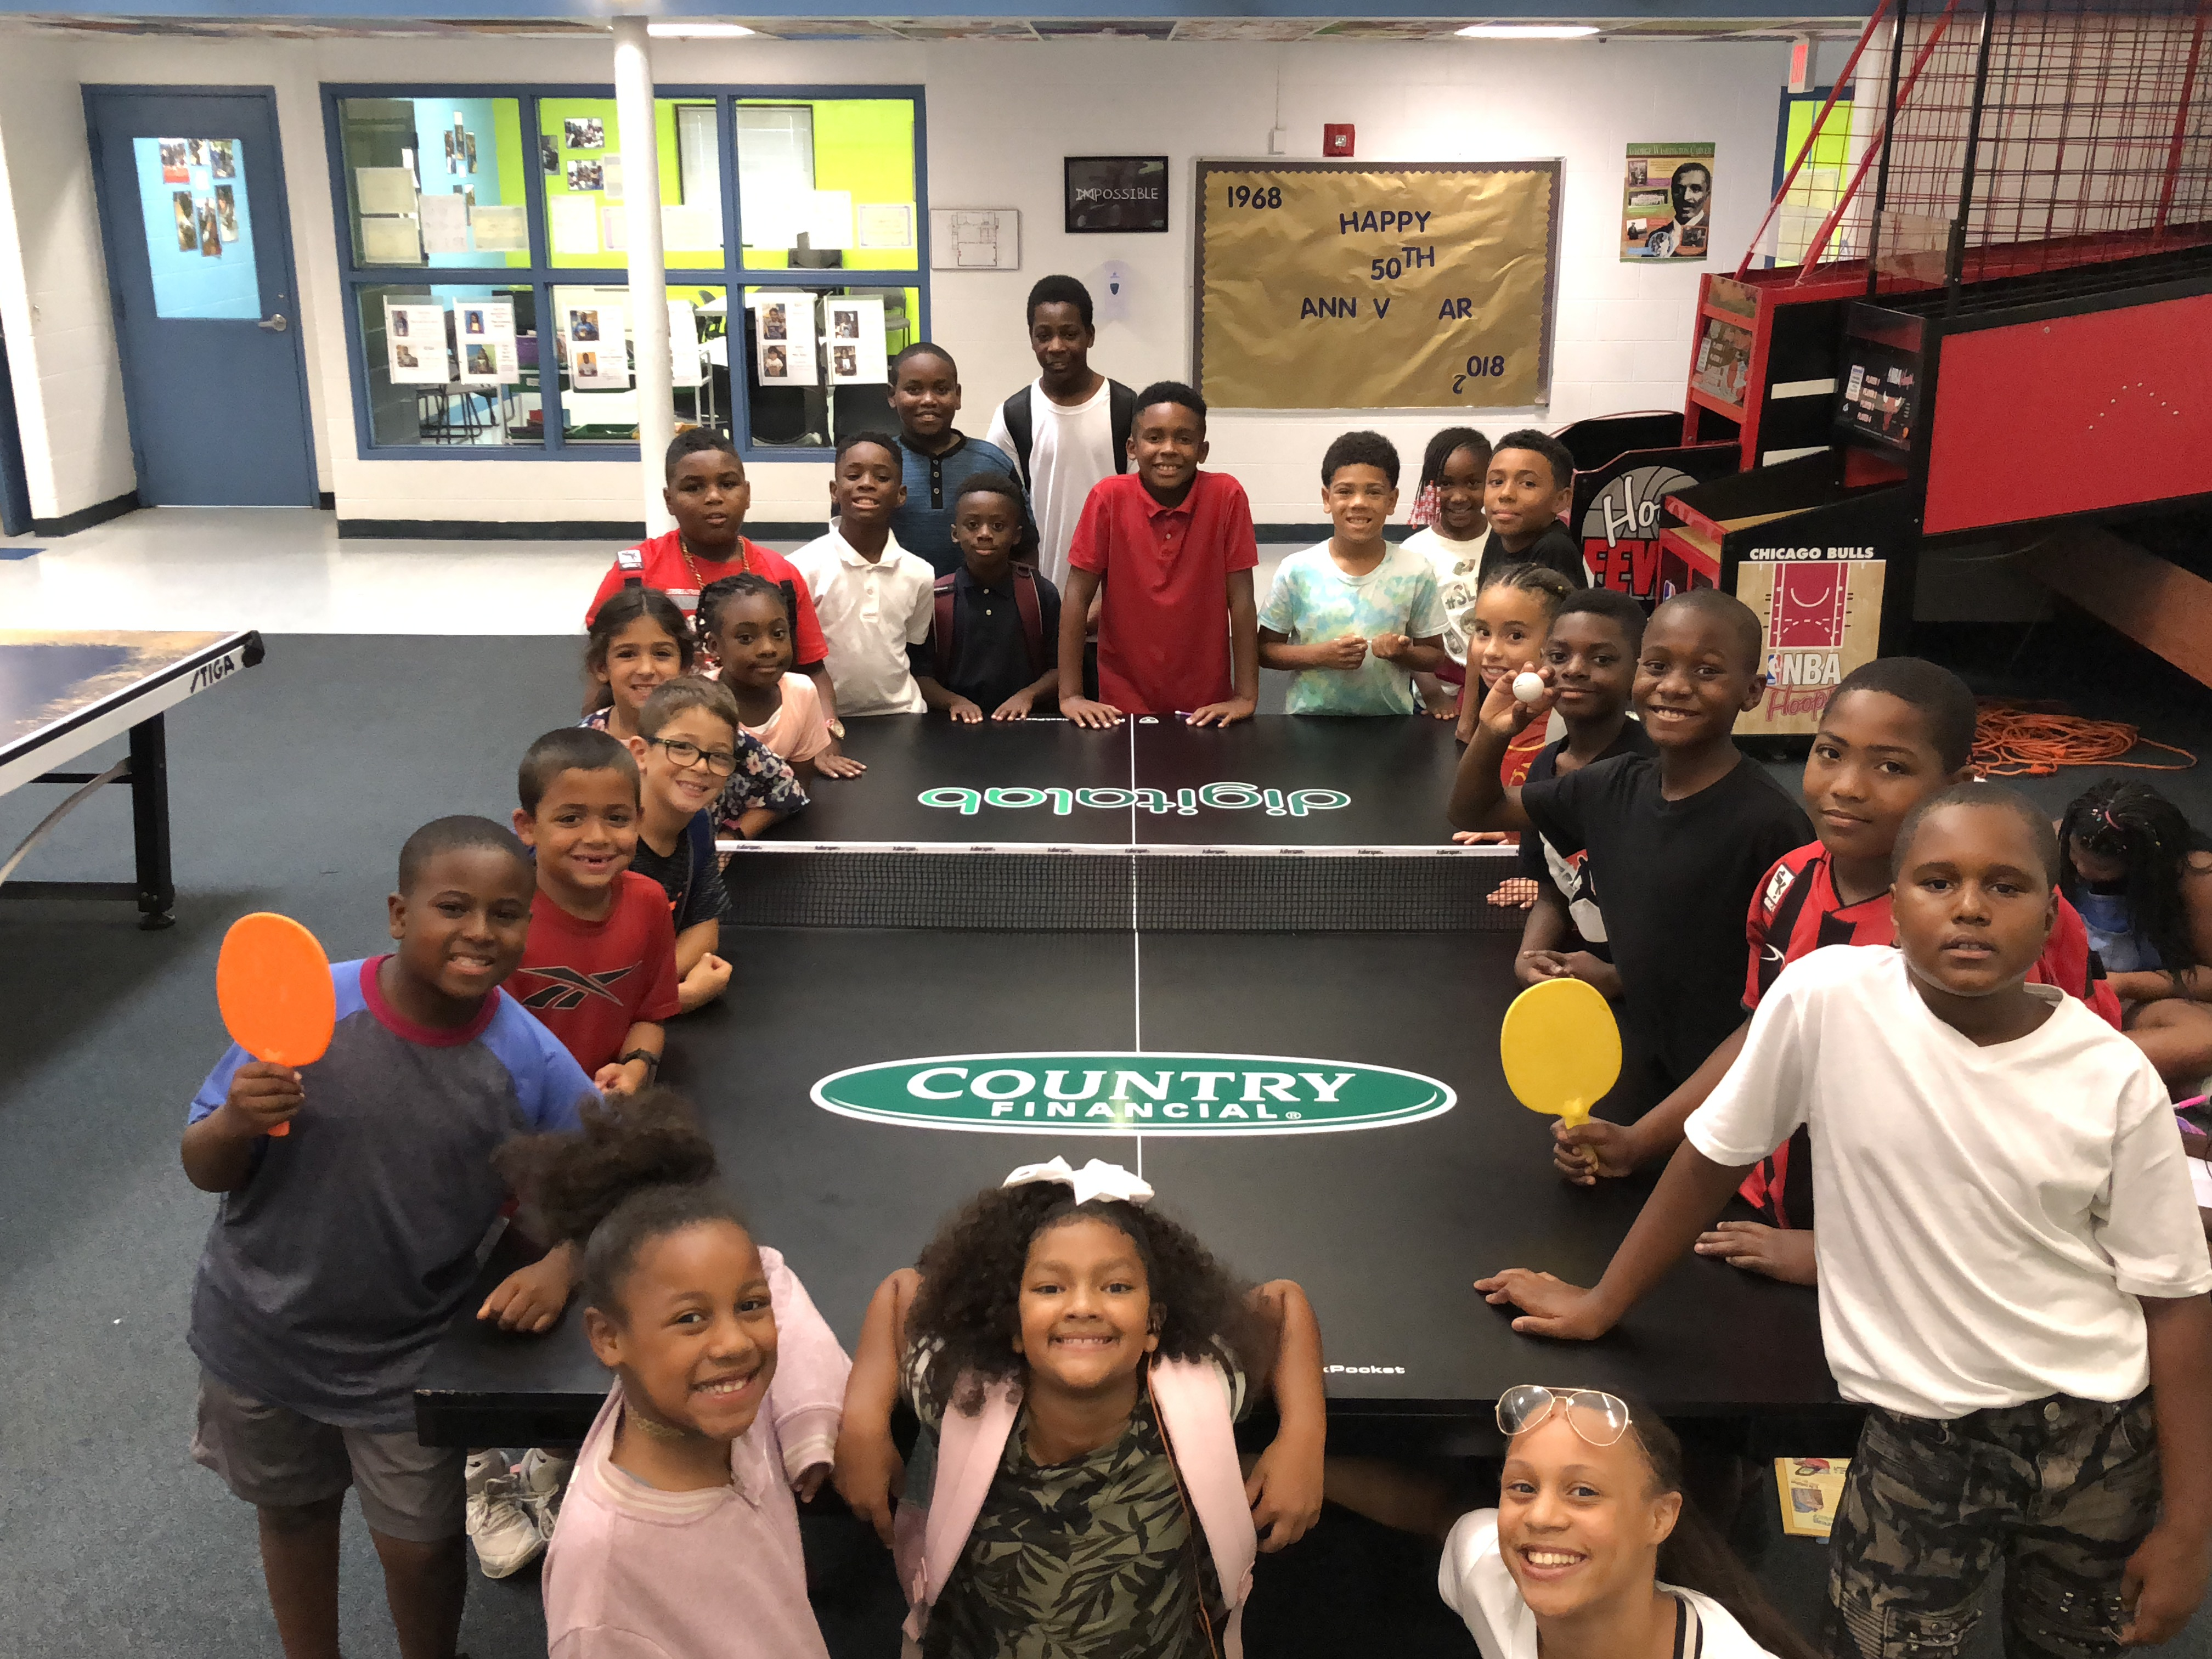 Thank you Country Financial for the donation of the amazing ping pong table!